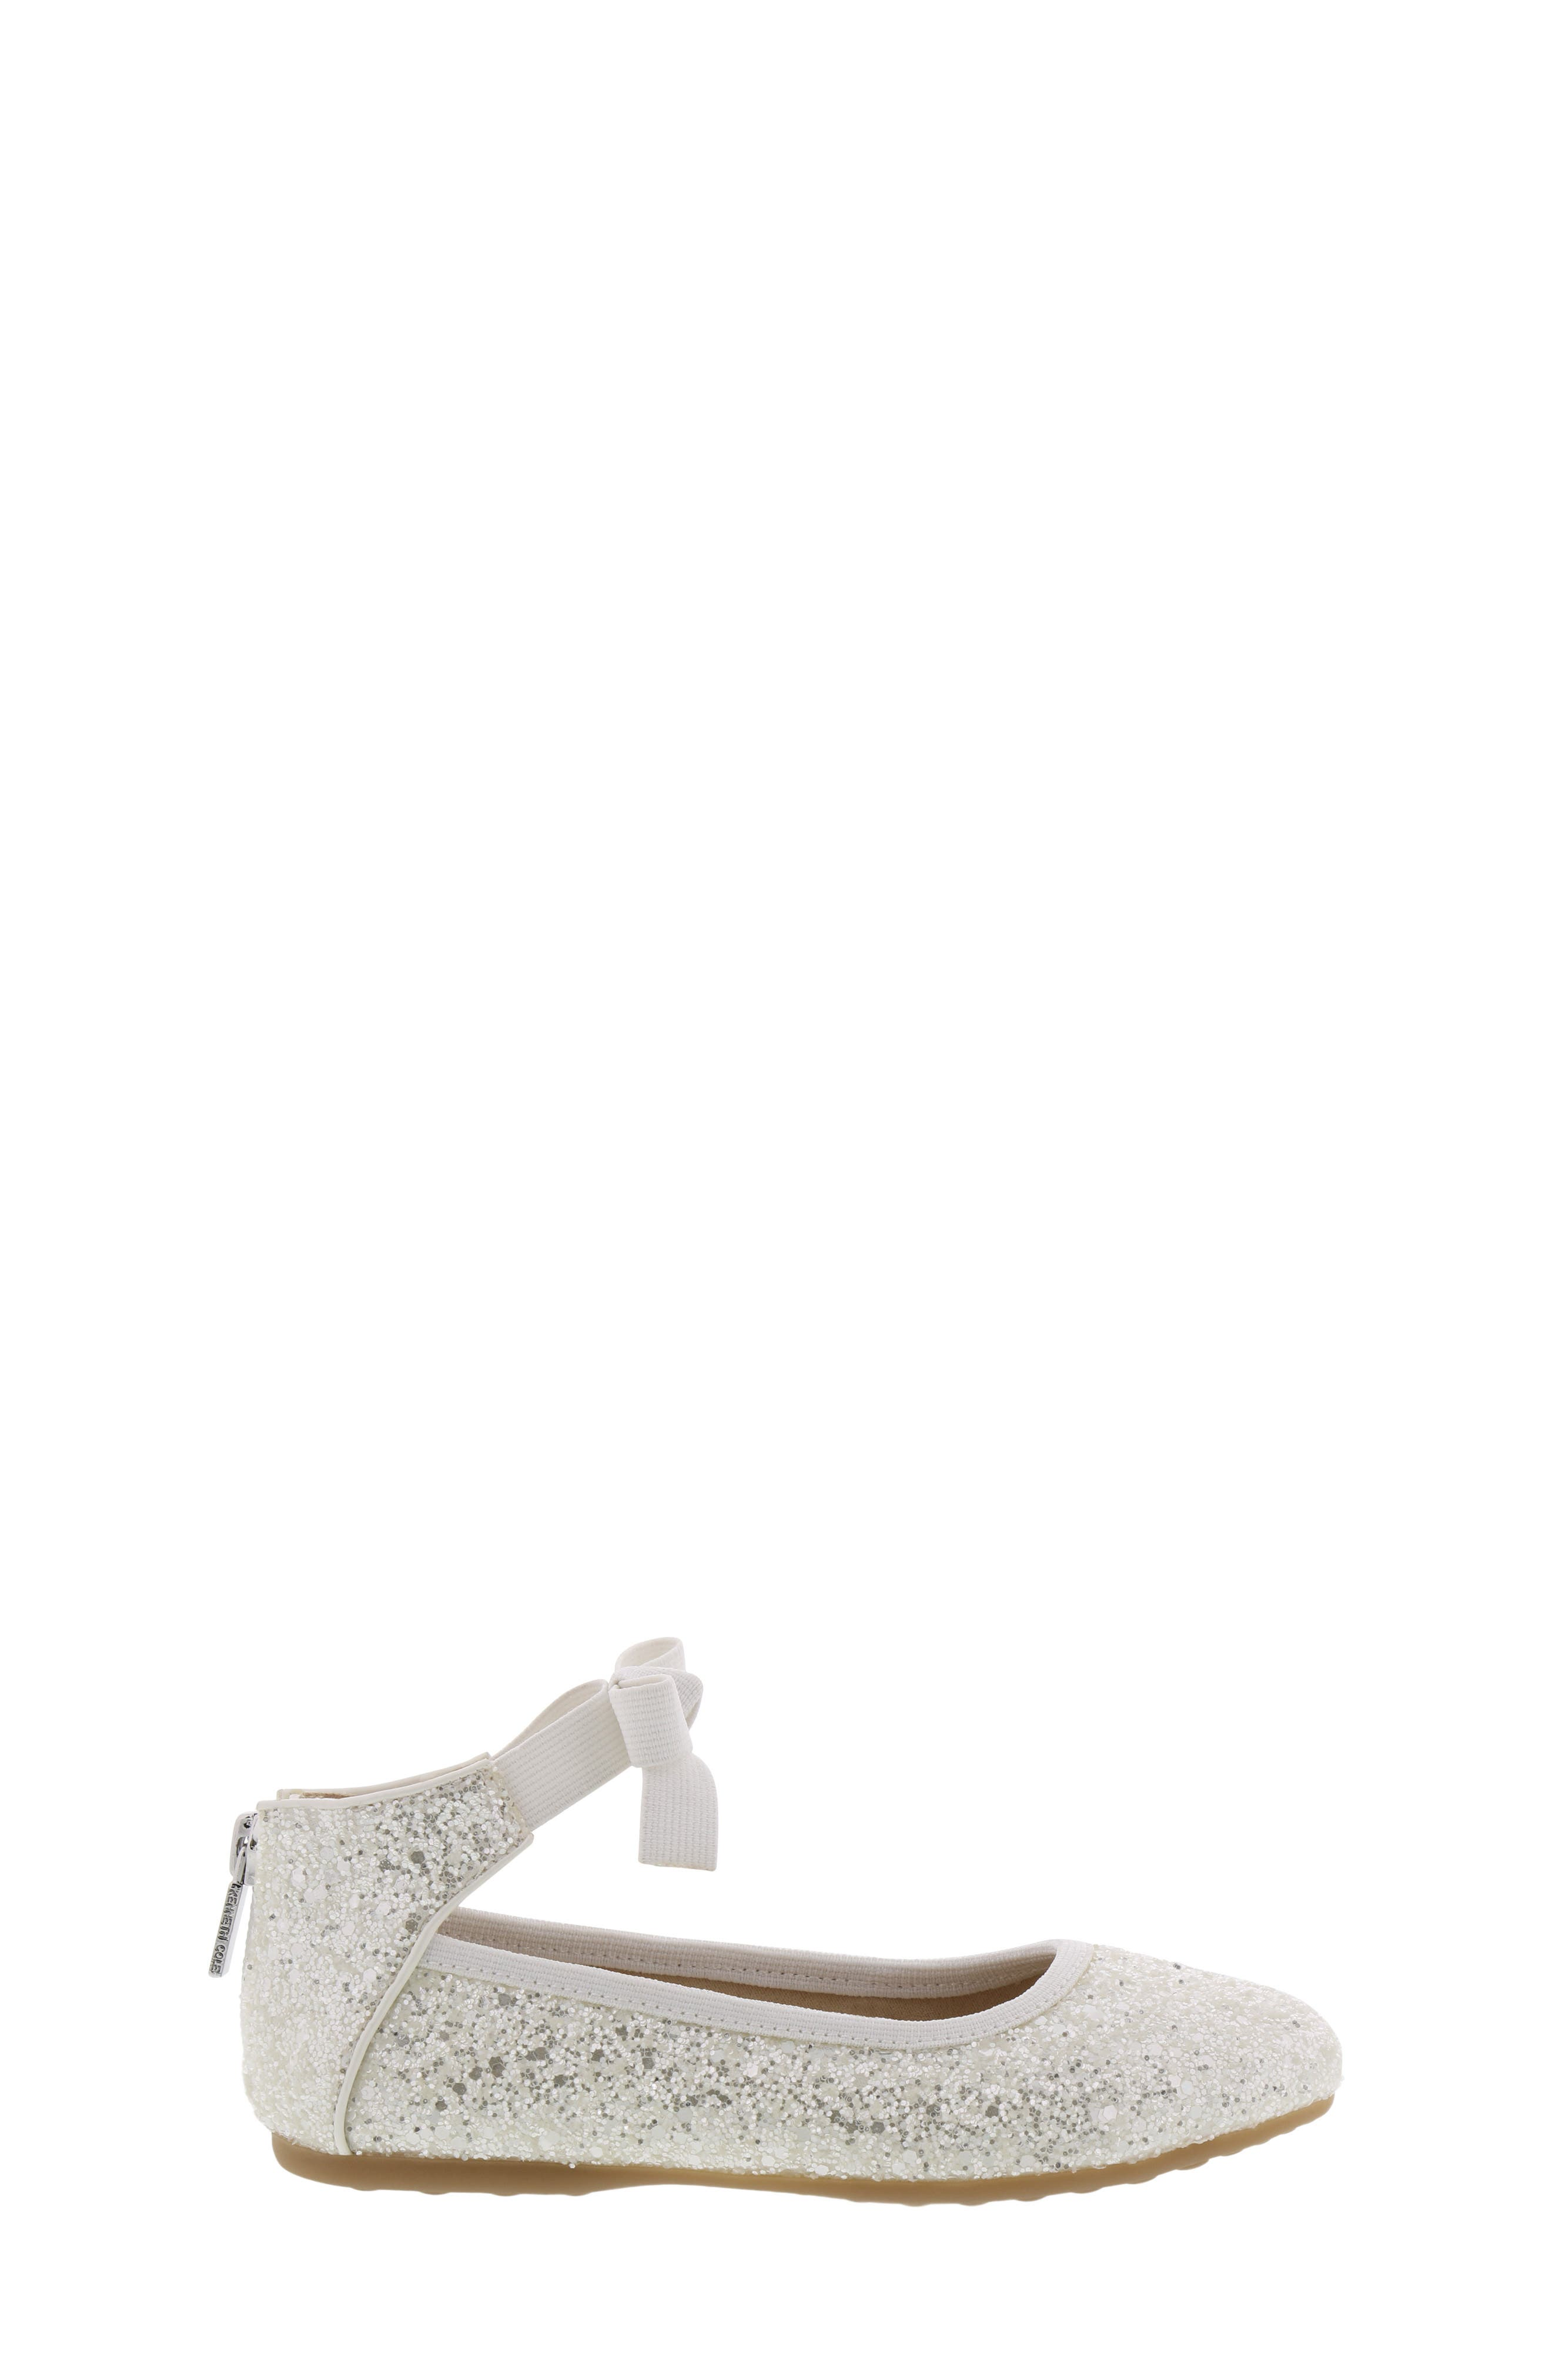 KENNETH COLE NEW YORK, Rose Bow Ballet Flat, Alternate thumbnail 3, color, WHITE SUGAR GLITTER